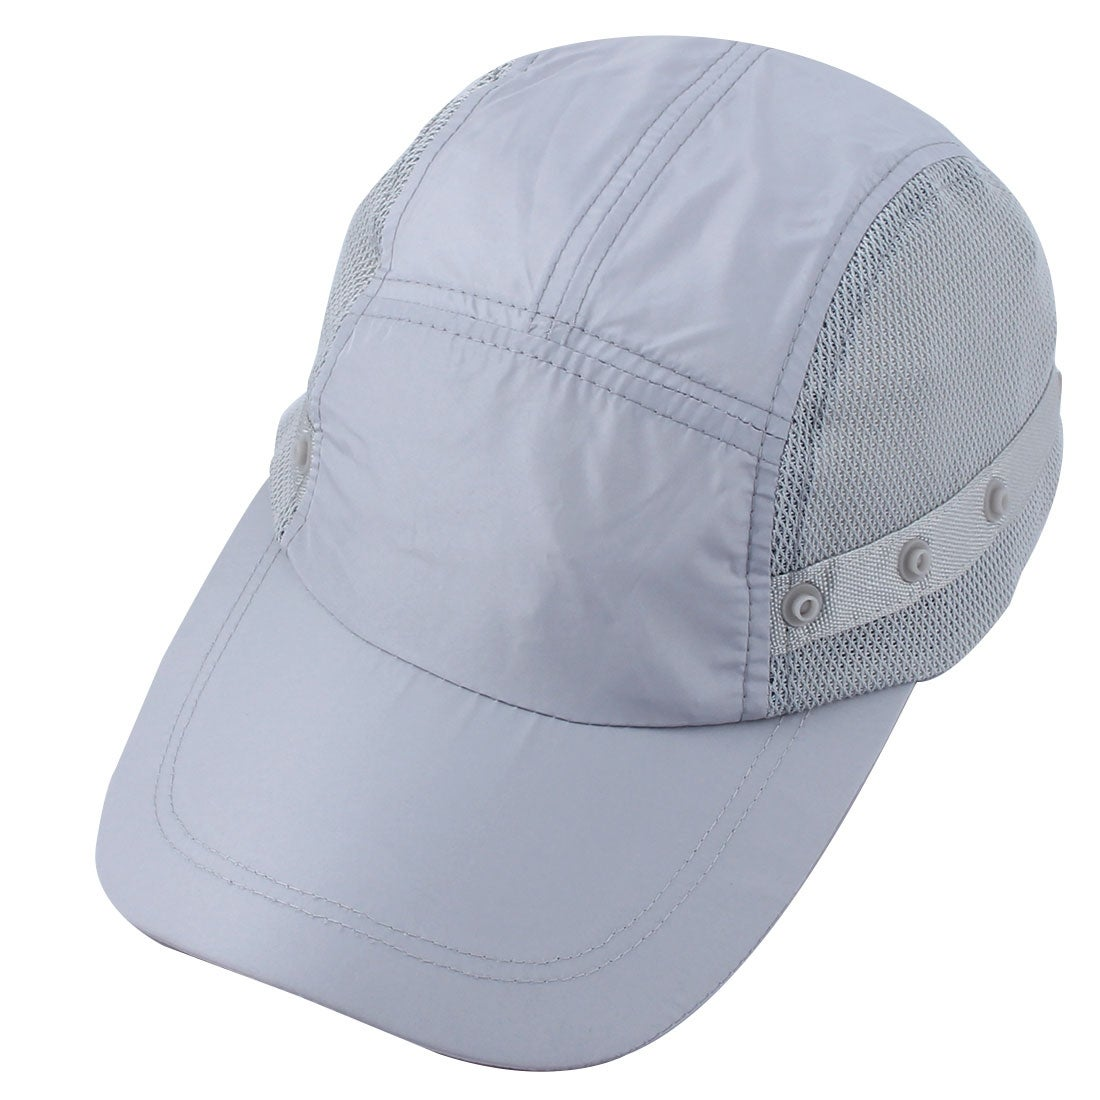 91f3c9ed8933c Shop Fisherman Outdoor Neck Sun Protective Demountable Summer Cap Fishing  Hat Gray - Free Shipping On Orders Over  45 - Overstock - 18441051